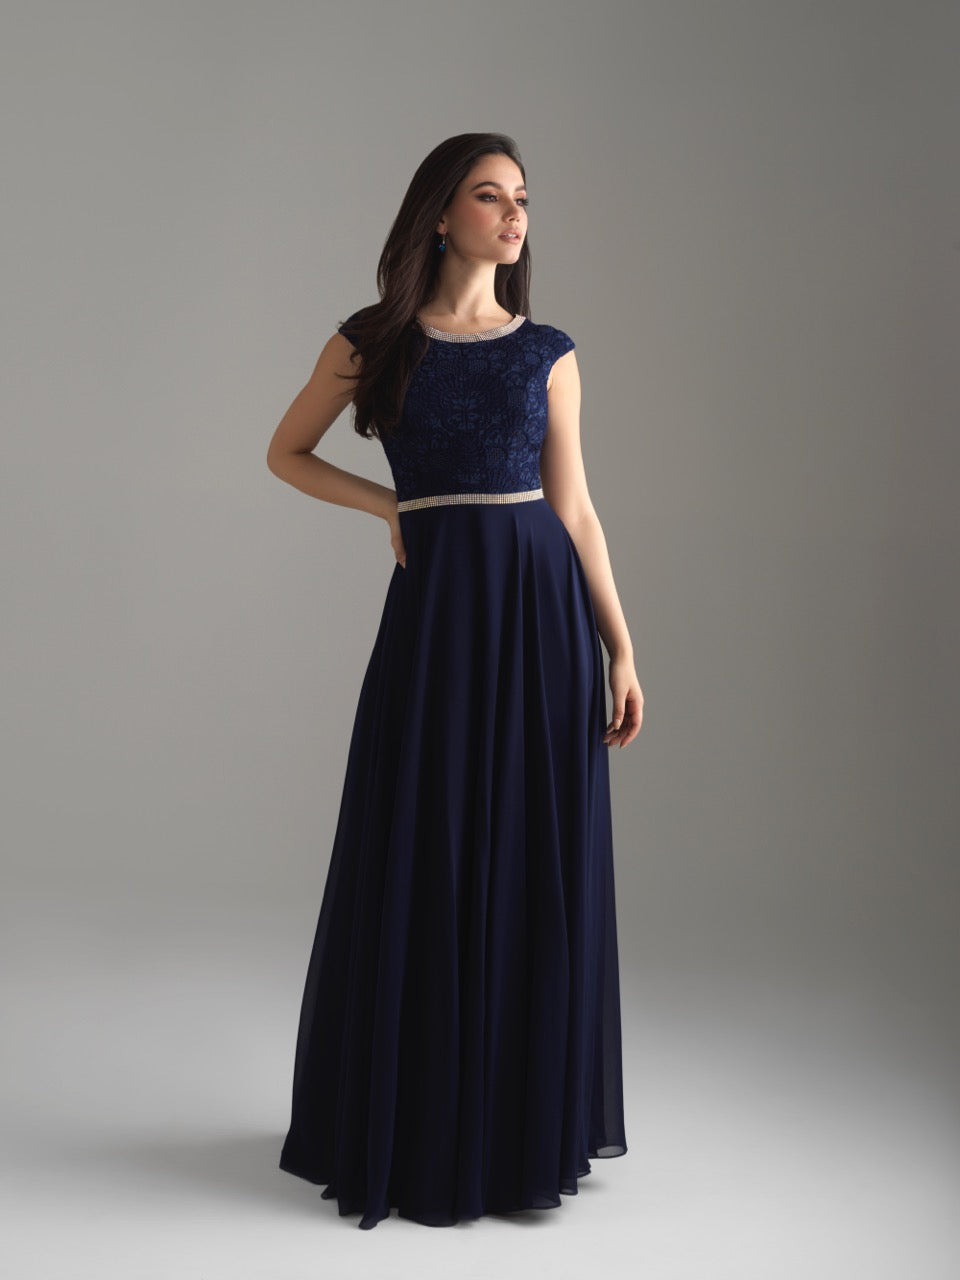 Madison James 18-802M Navy modest prom dress A-Line winter formal cap sleeves cheap Mormon Prom conservative